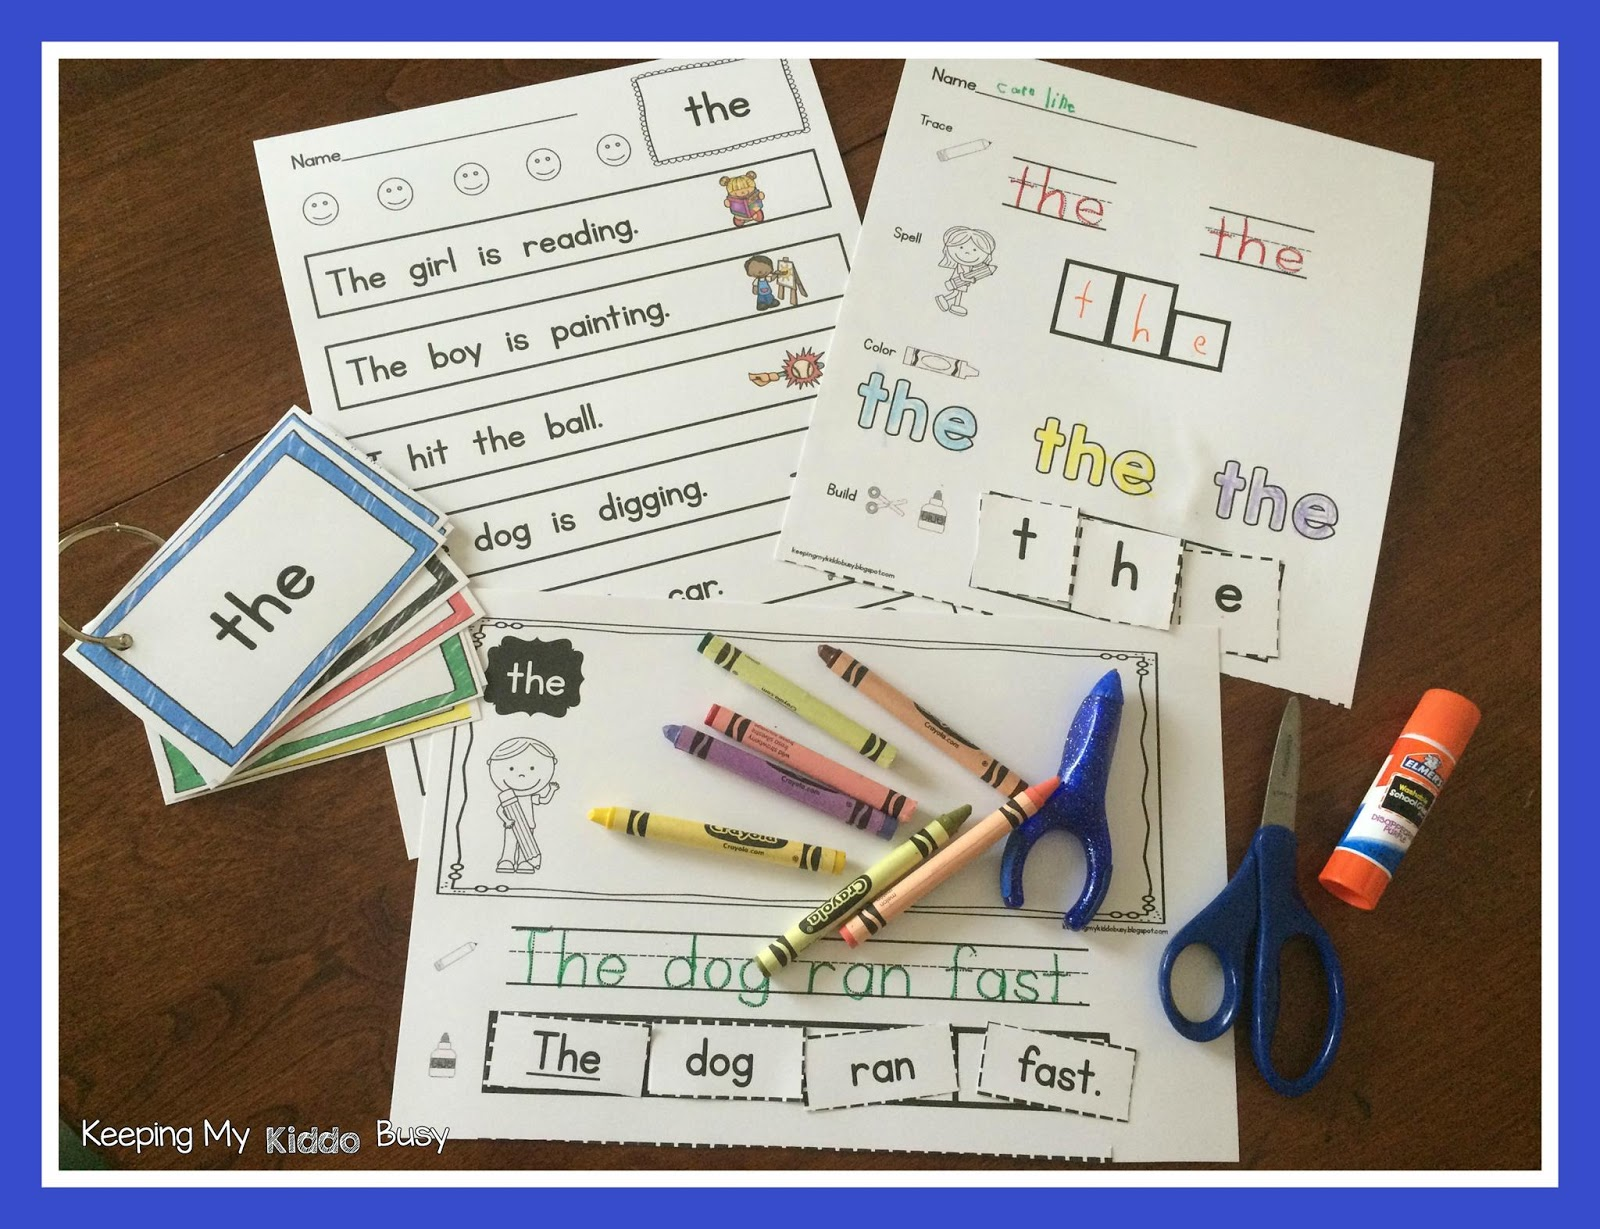 Keeping My Kiddo Busy How I Teach Sight Words